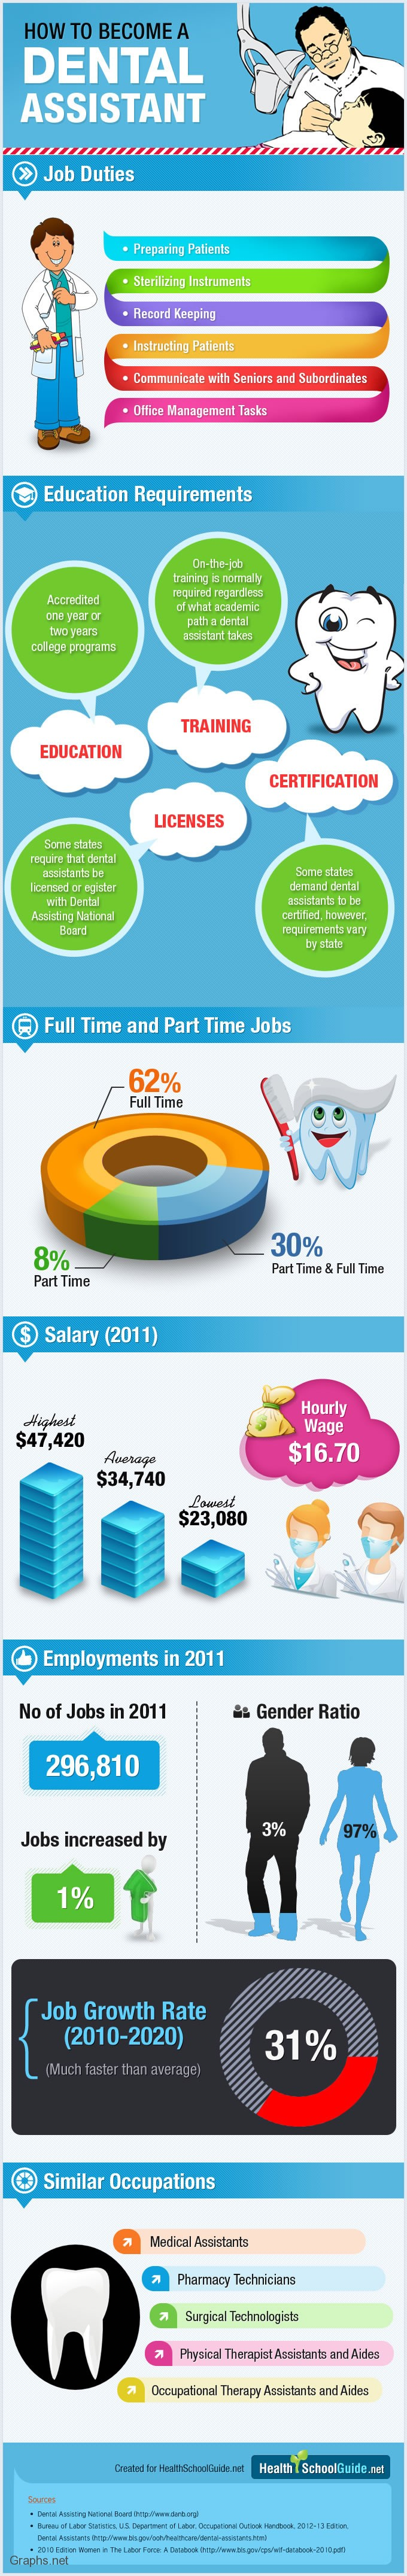 How to become a dental assistant